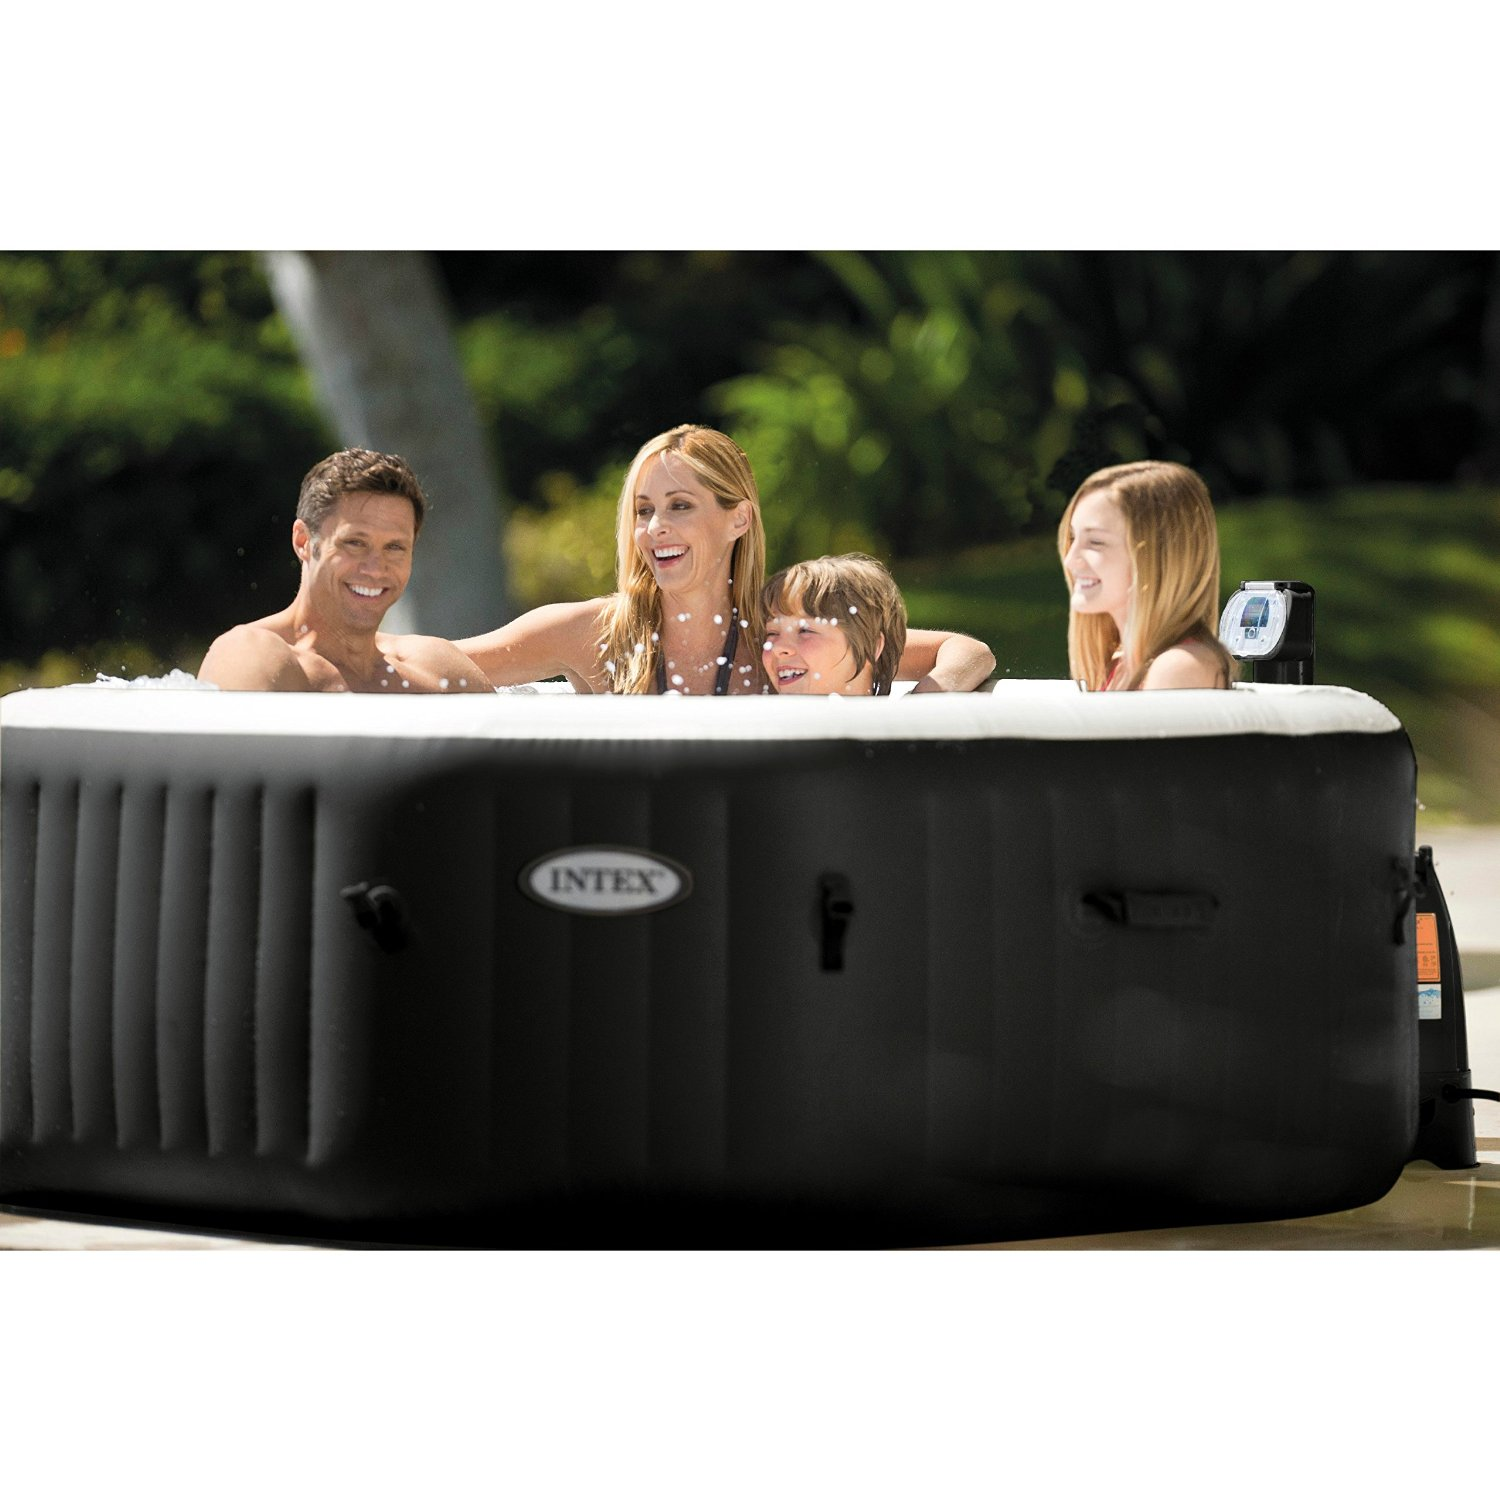 person tub portable jets inflatable walmart sale intex hot spa octagonal tubs for ip bubble com